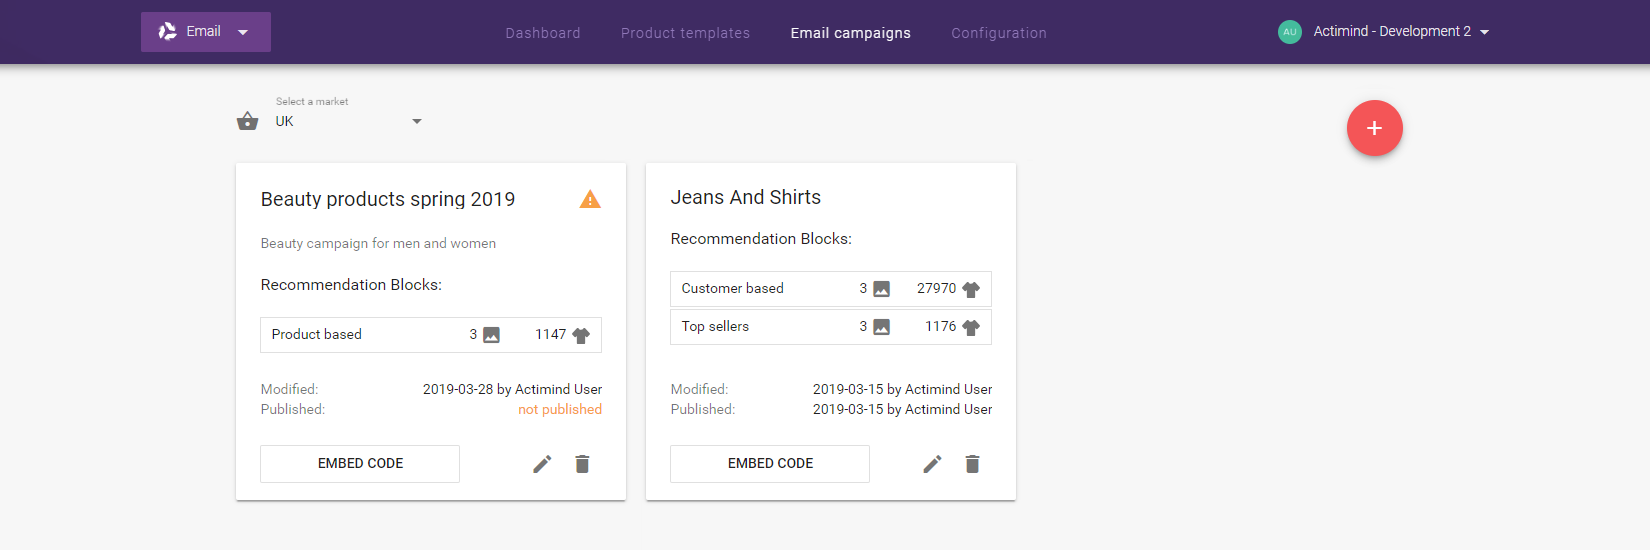 Email Recommendations - Email campaigns - Campaign preview